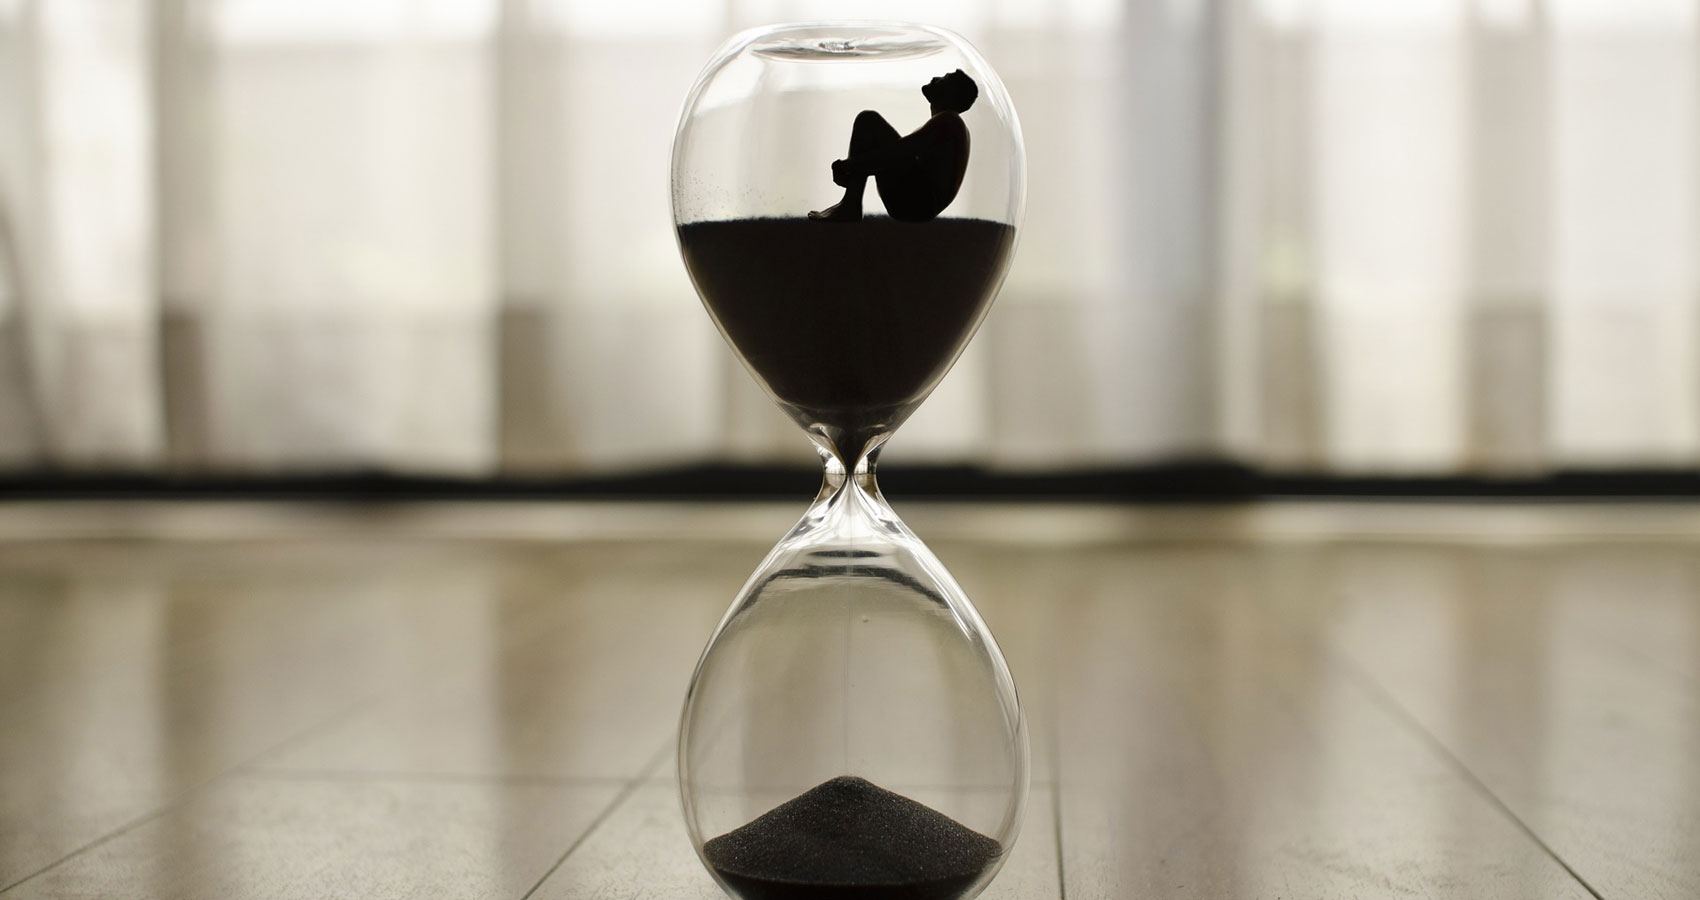 Contemplated Time by Geovanni Villafañe at Spillwords.com